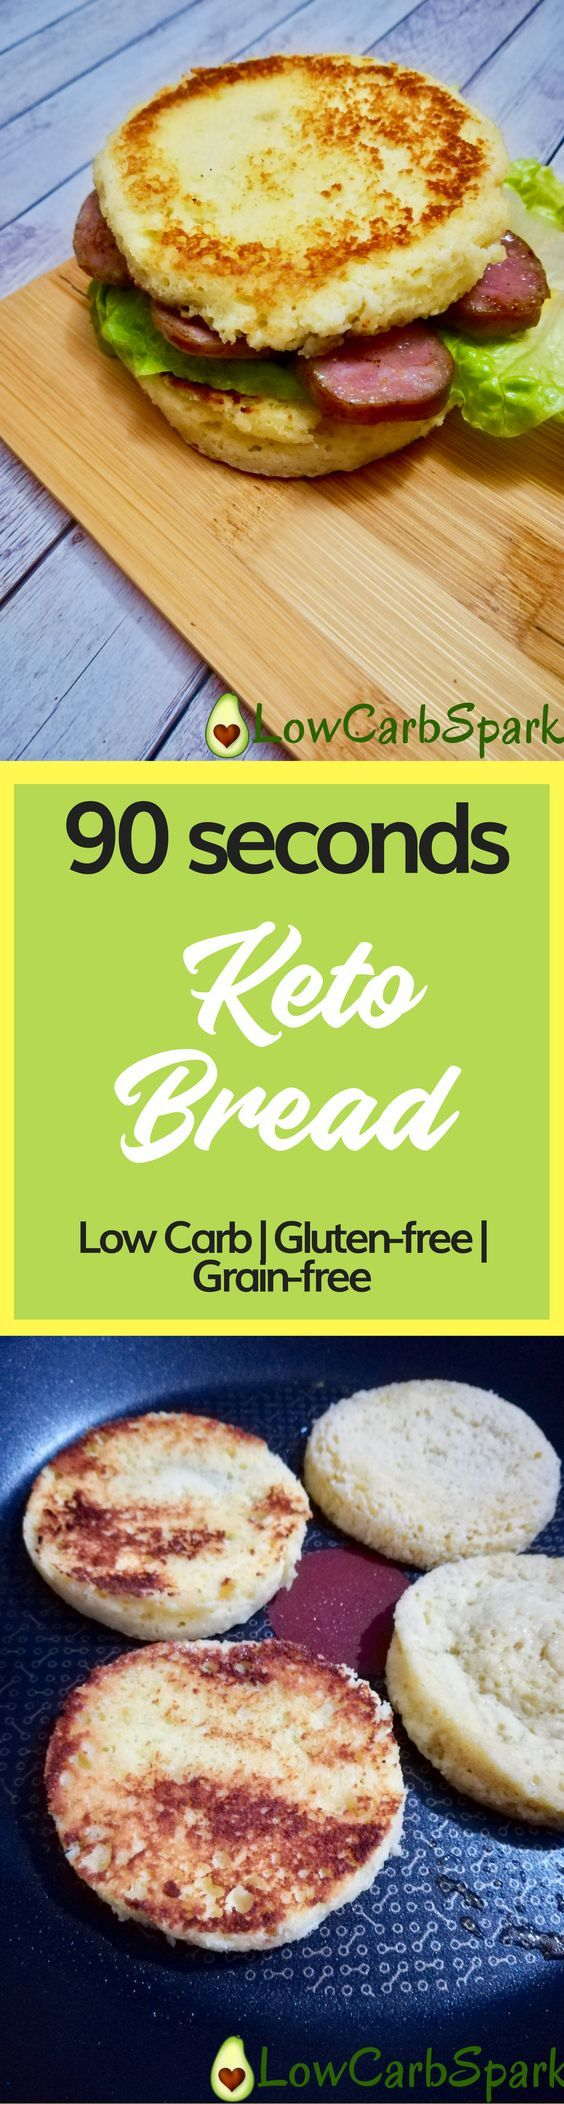 Bread_ Low Carb & Grain-free heading